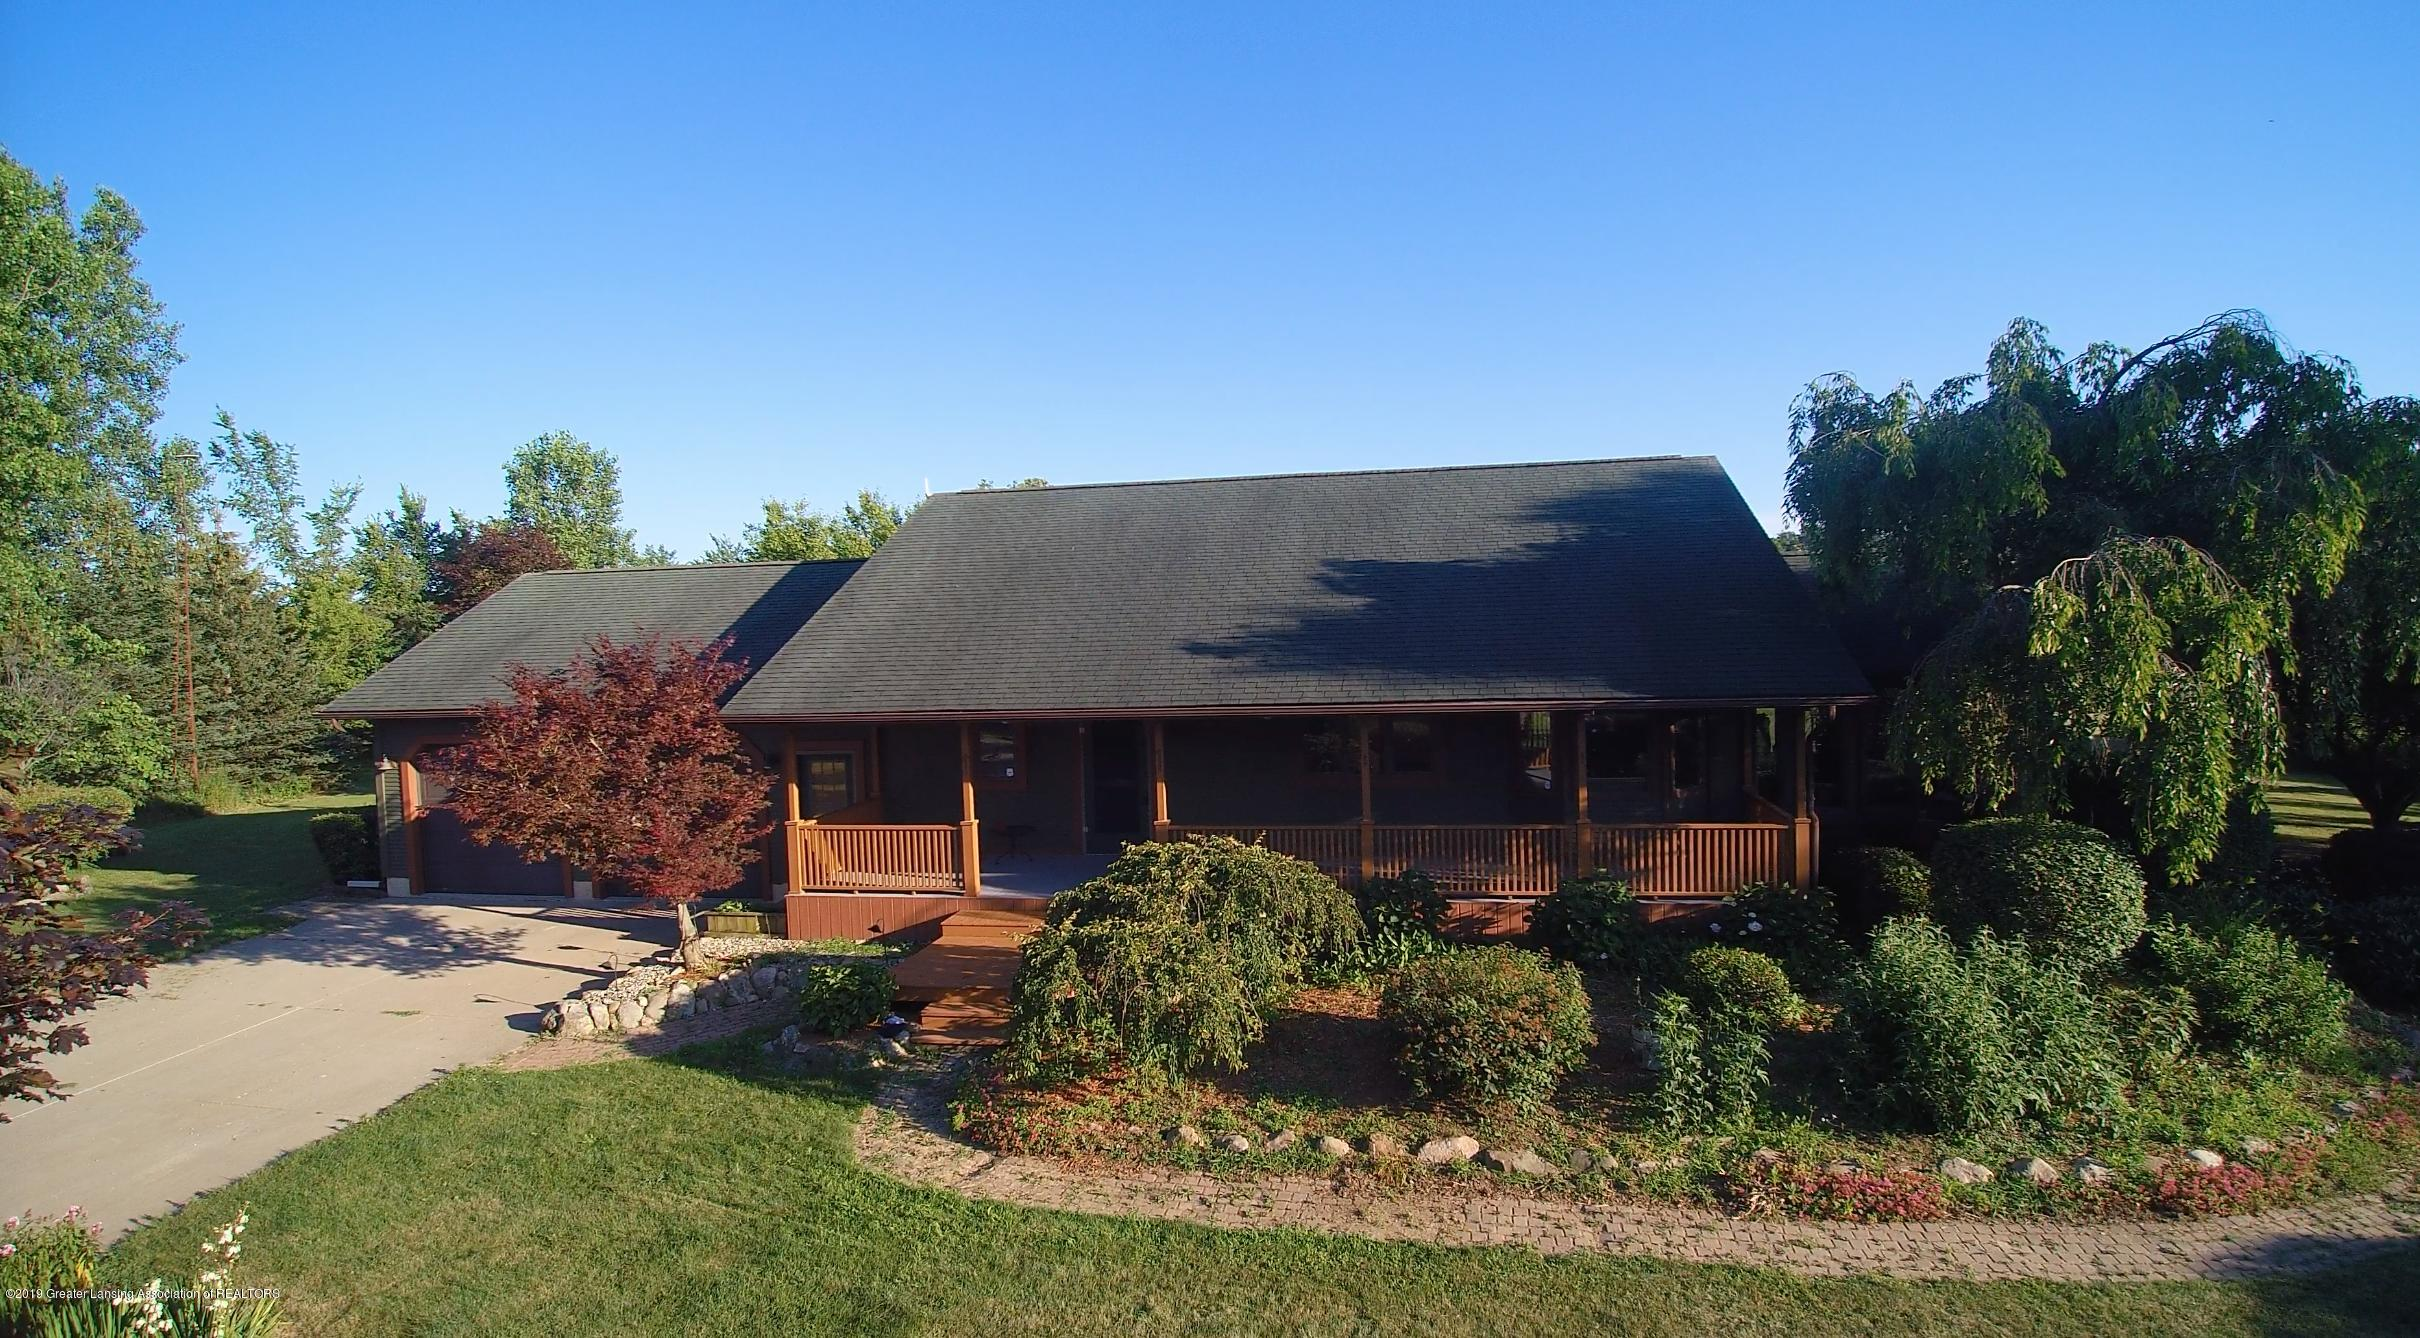 8040 Towner Rd - Frontal - 1